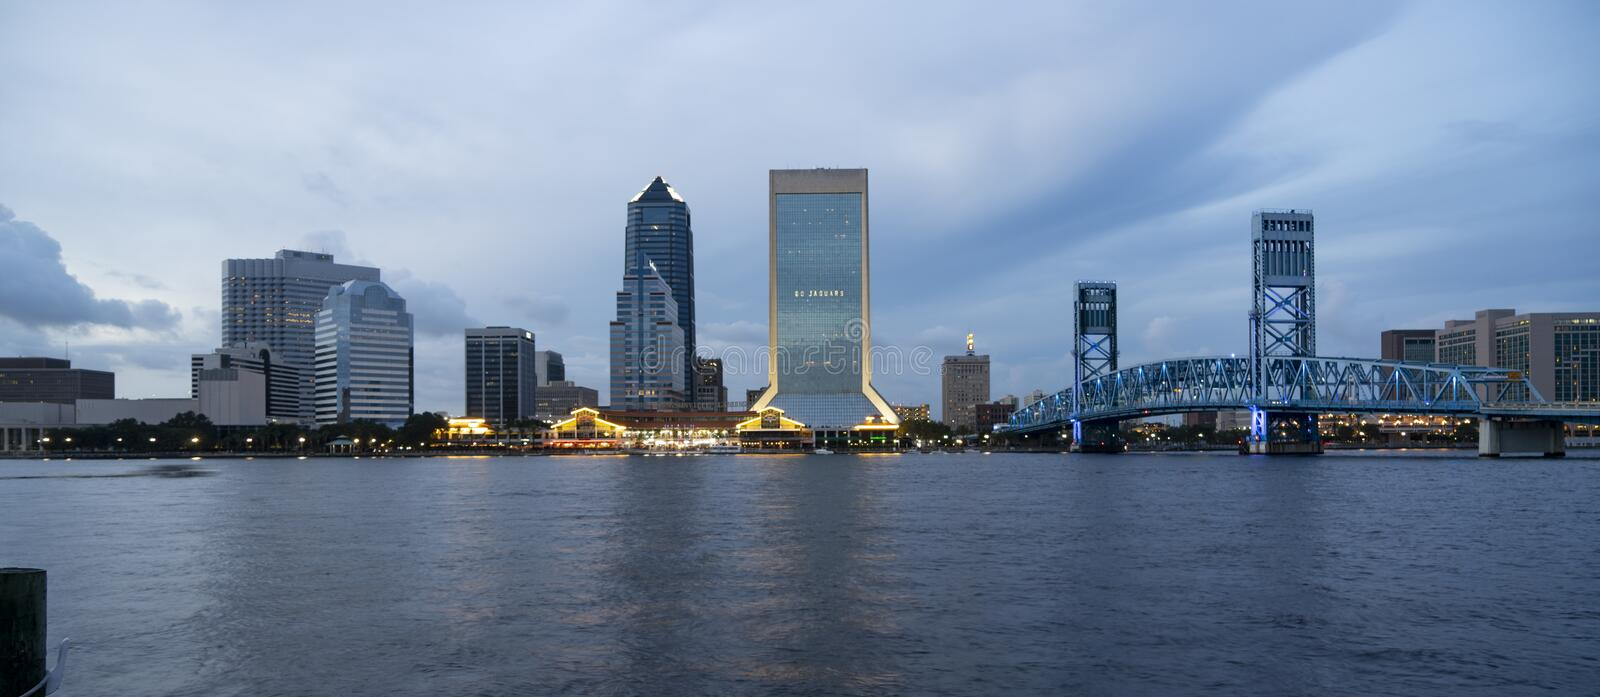 Blue Color Dominates this View of Downtown City Skyline Jacksonville royalty free stock photo